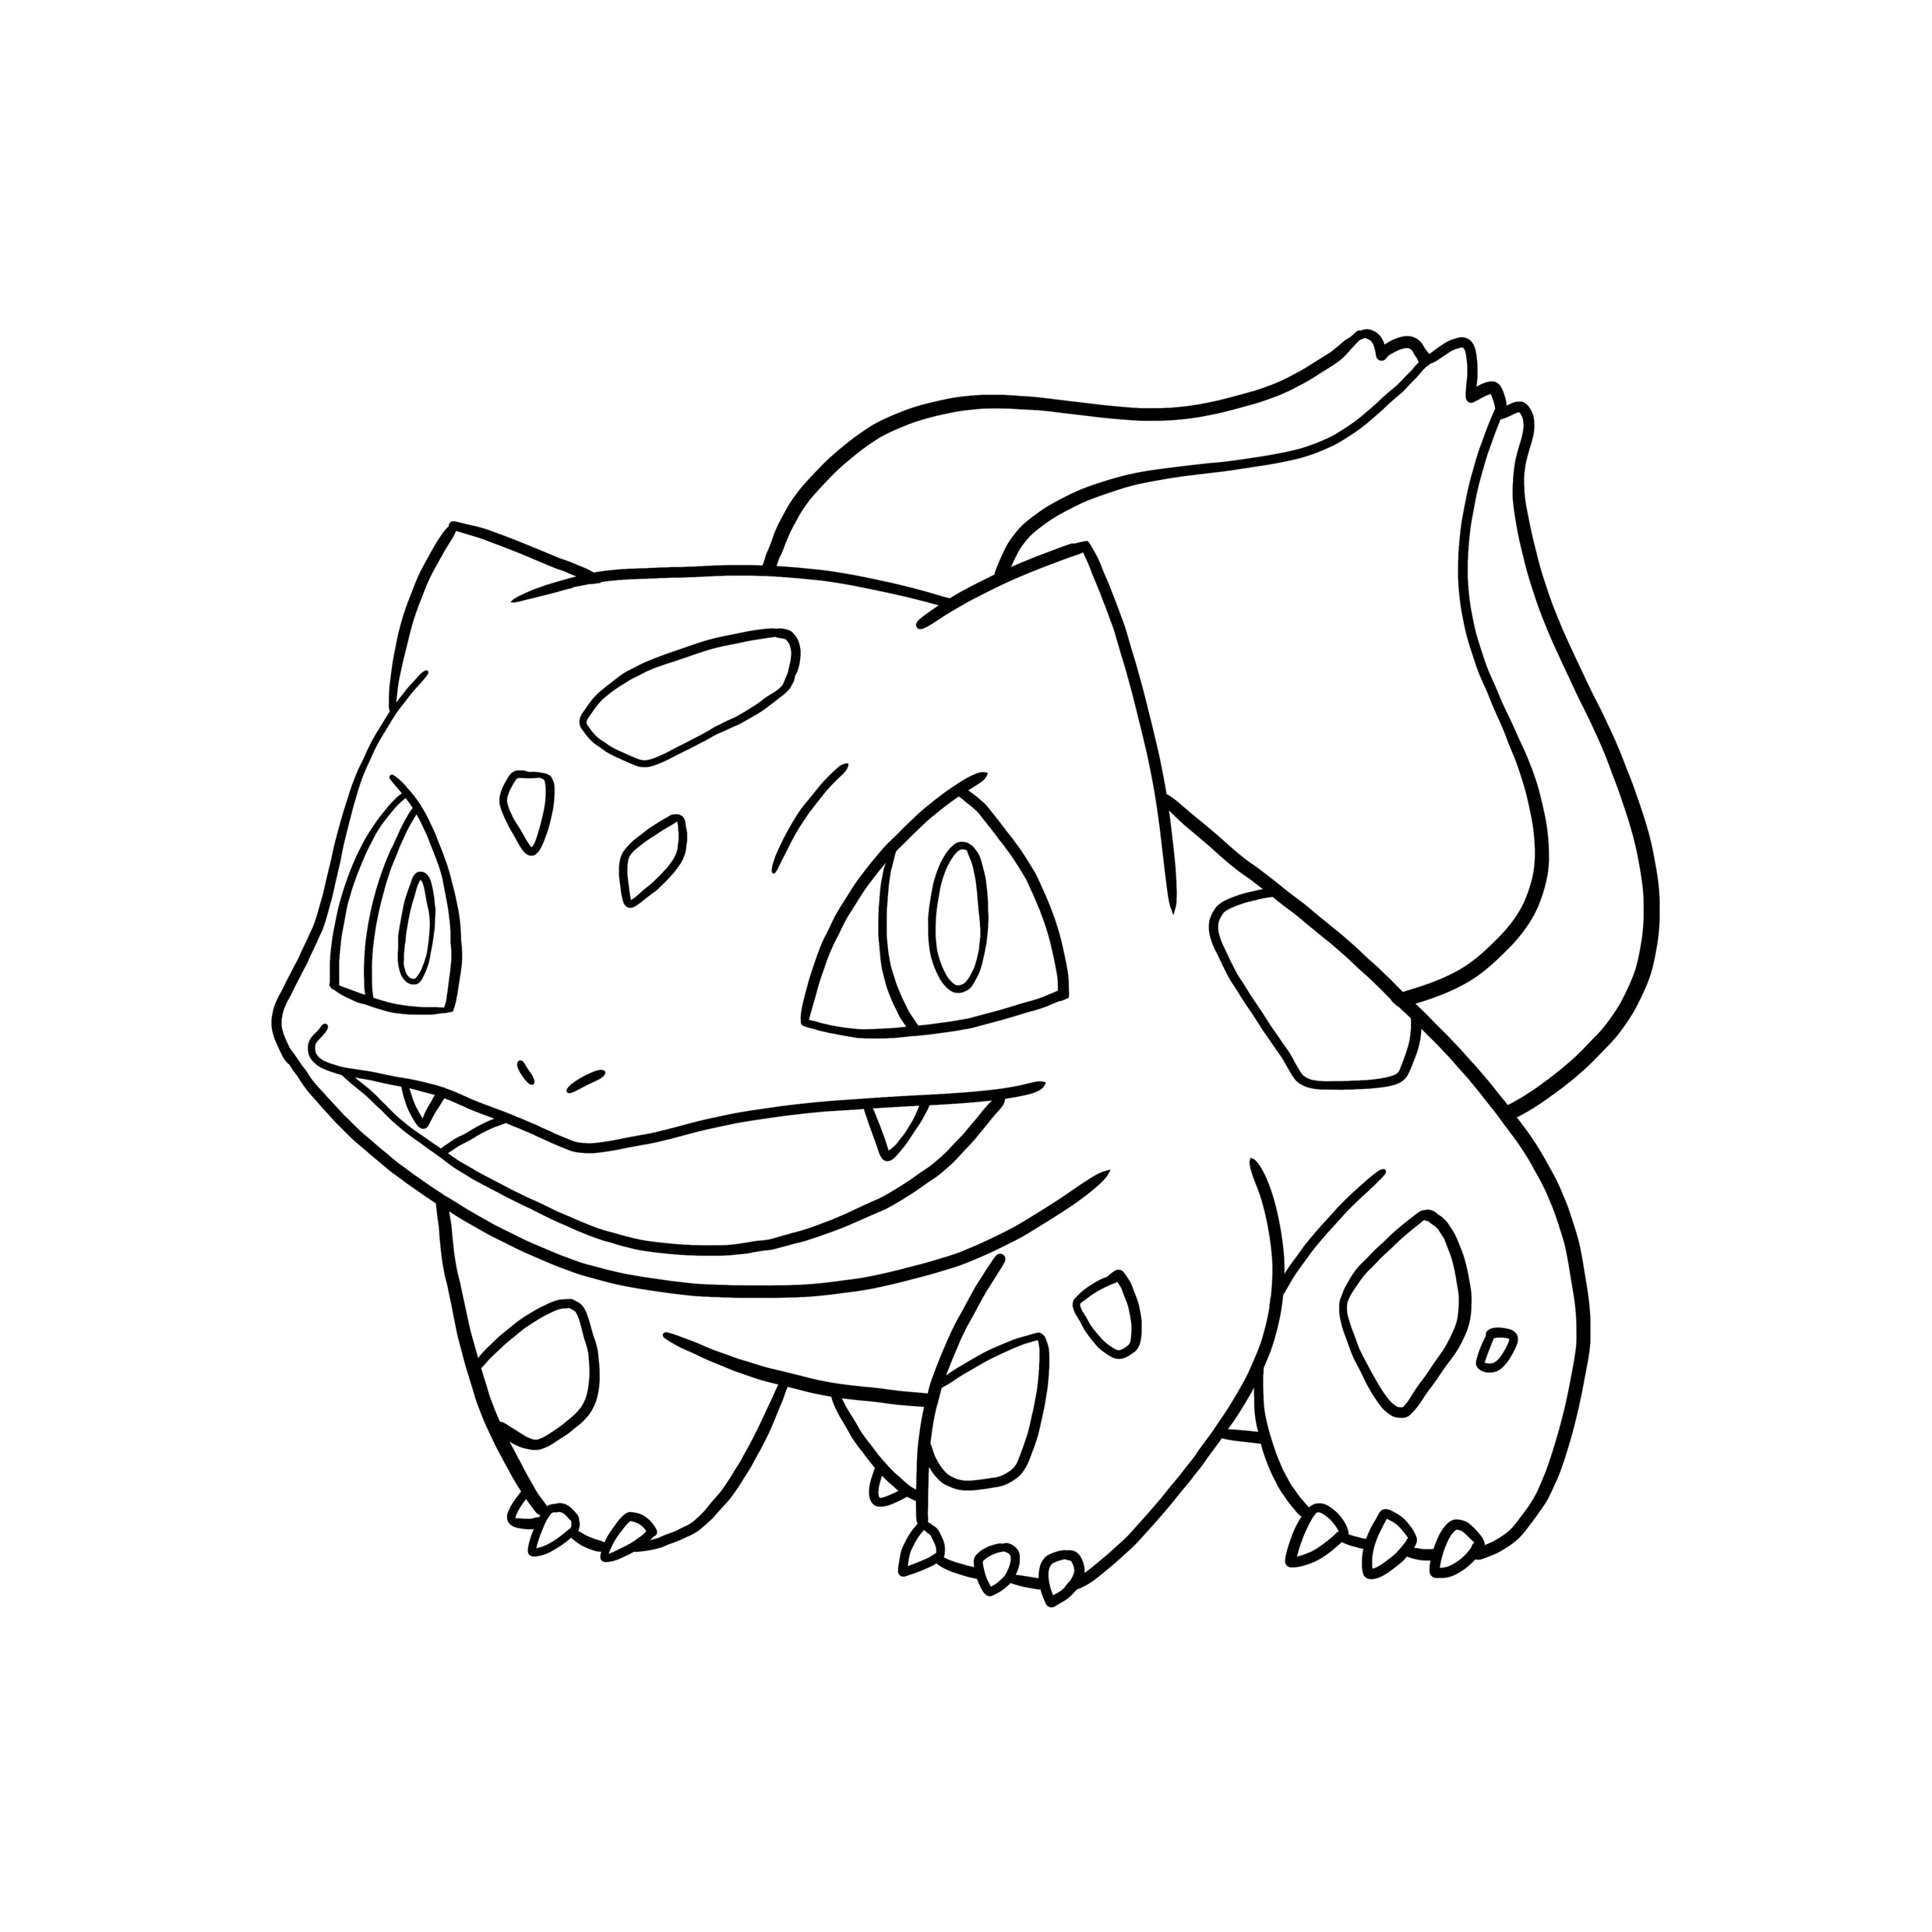 charmander colouring pages charmander coloring pages free printable charmander colouring pages charmander